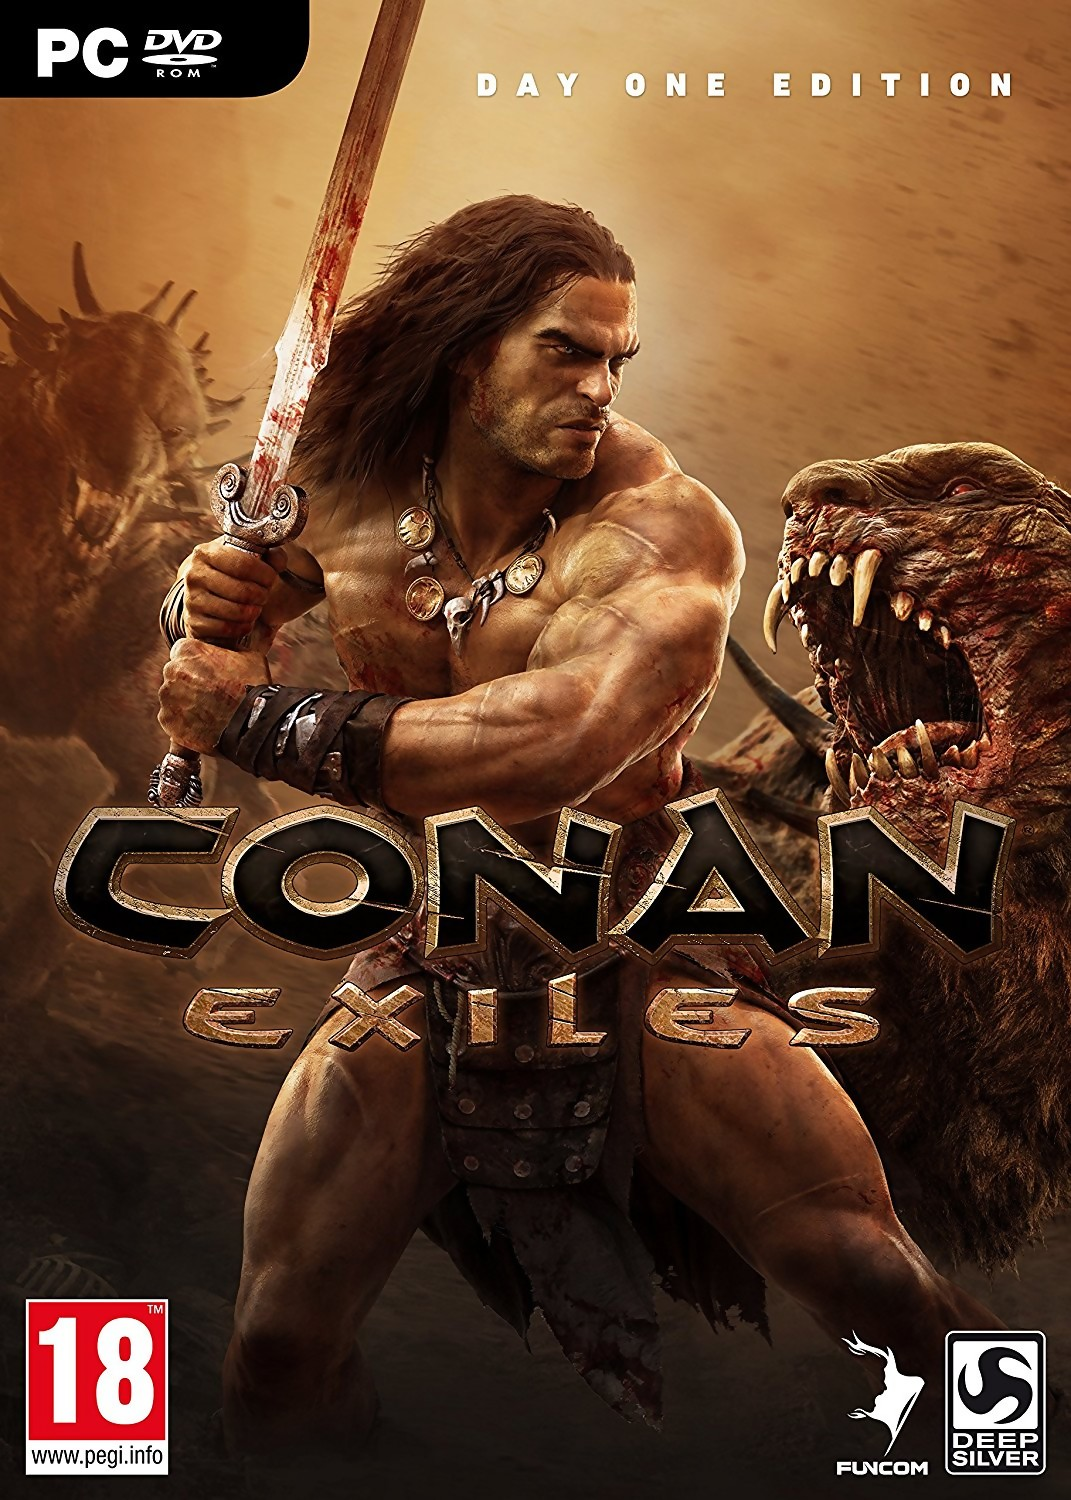 Manifestation of Zeal - Official Conan Exiles Wiki